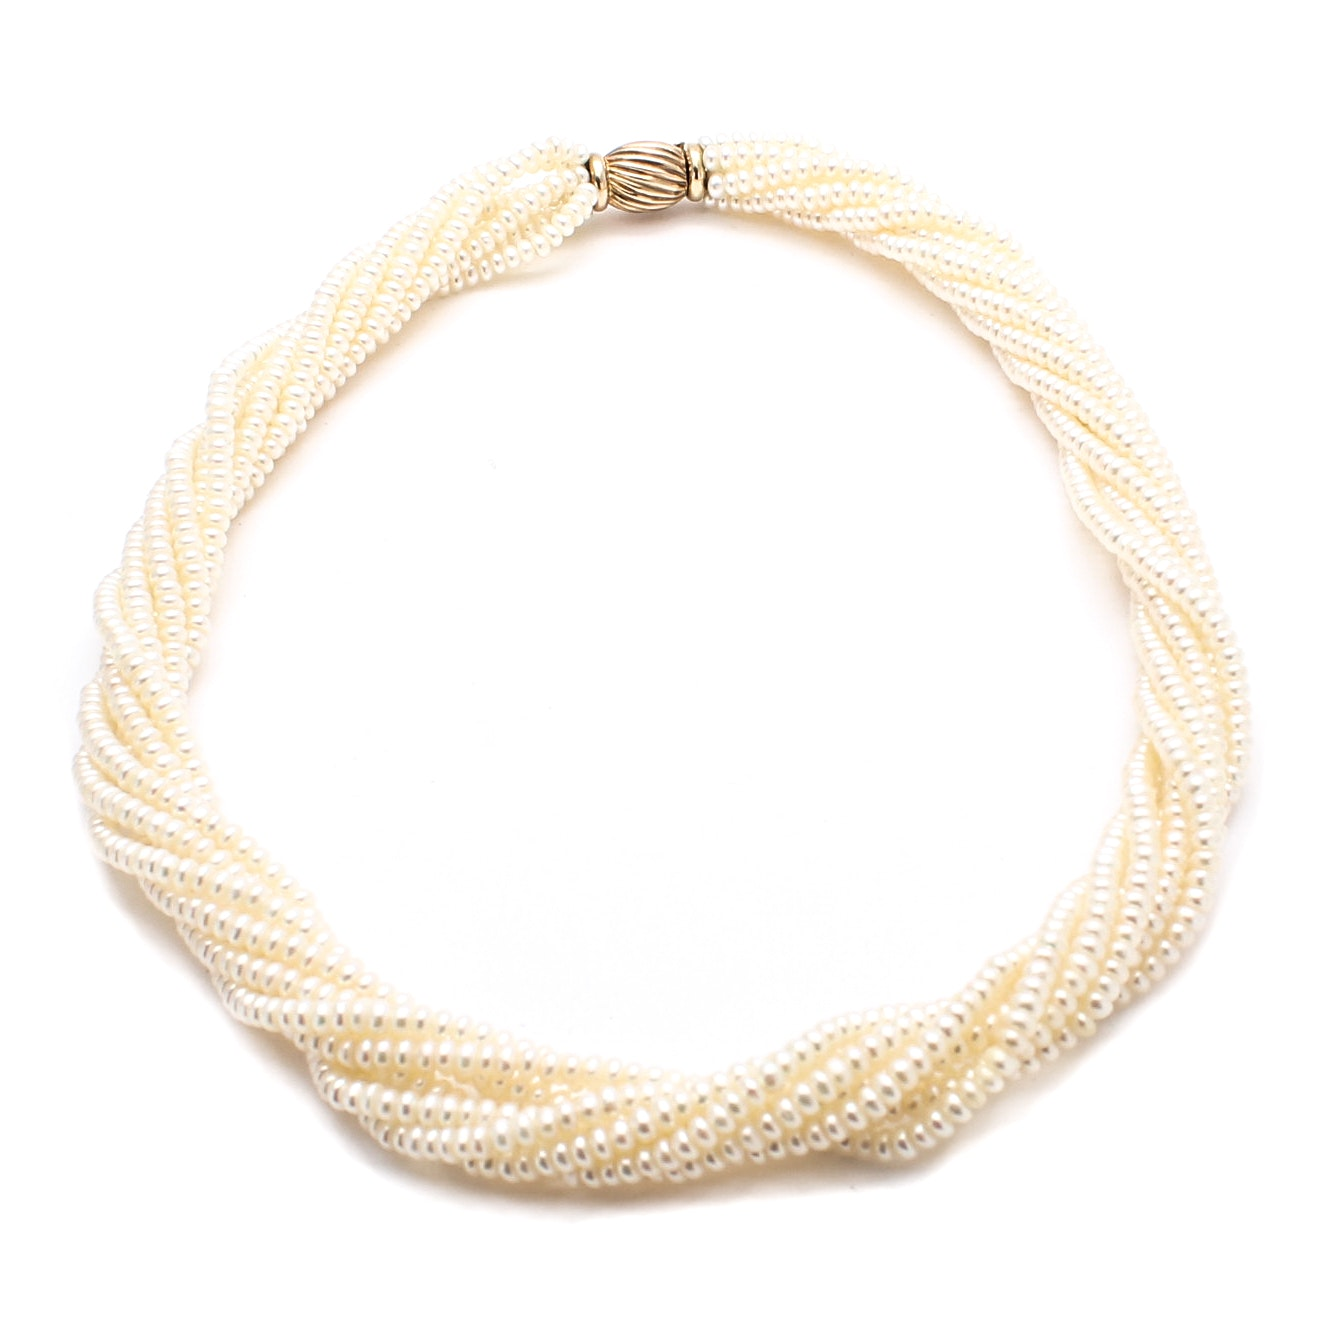 Cultured Freshwater Pearl Necklace with 9K Yellow Gold Clasp